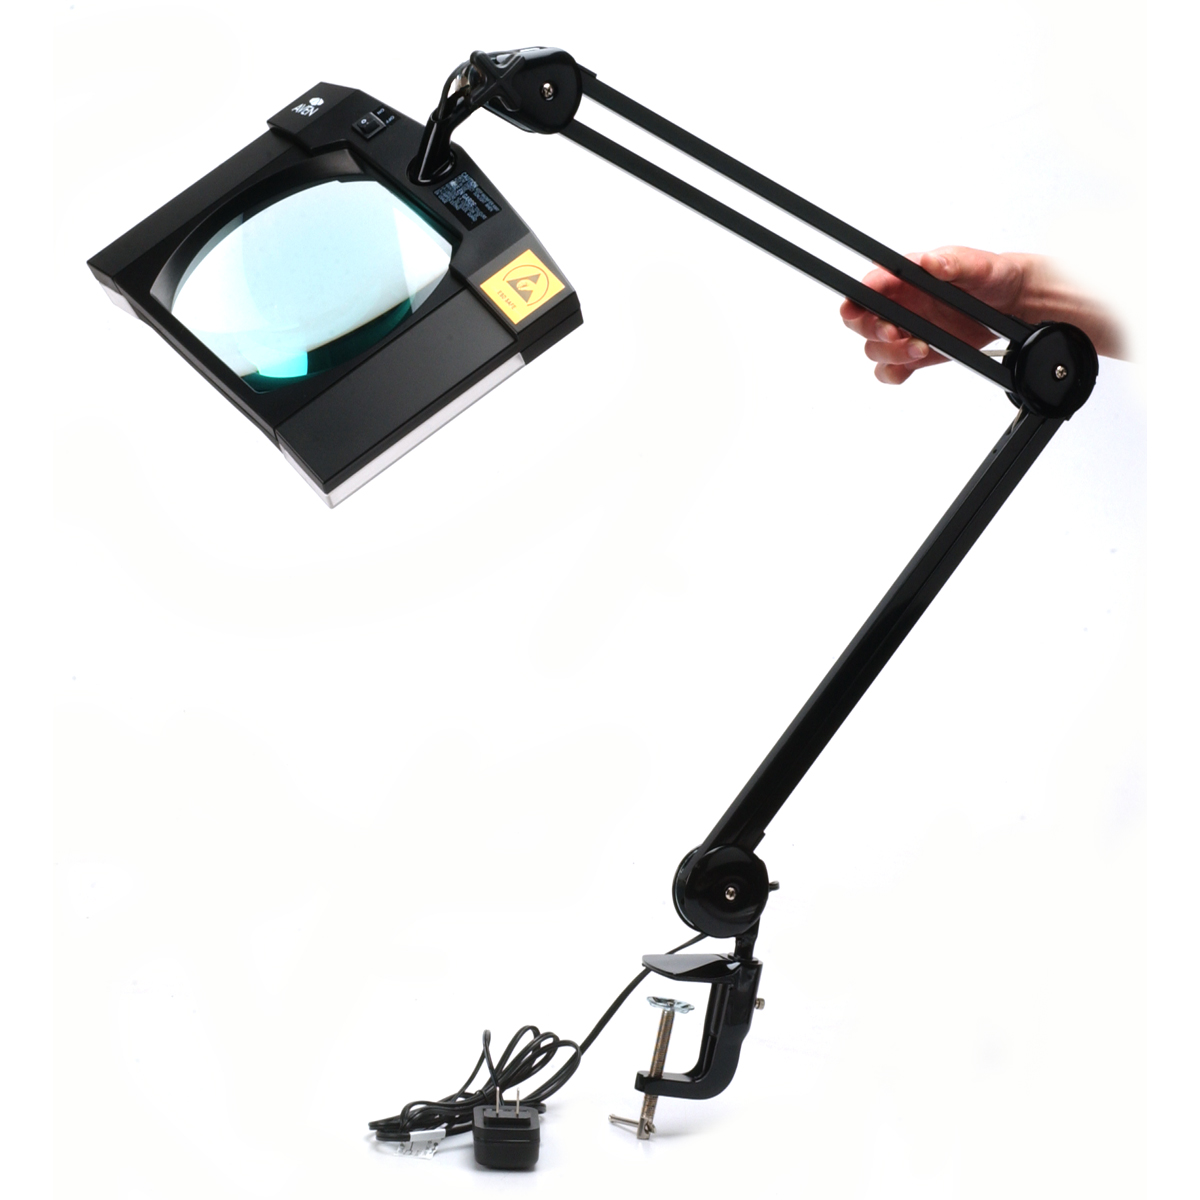 Aven Mighty Vue LED Magnifying Lamp QCPHCZO